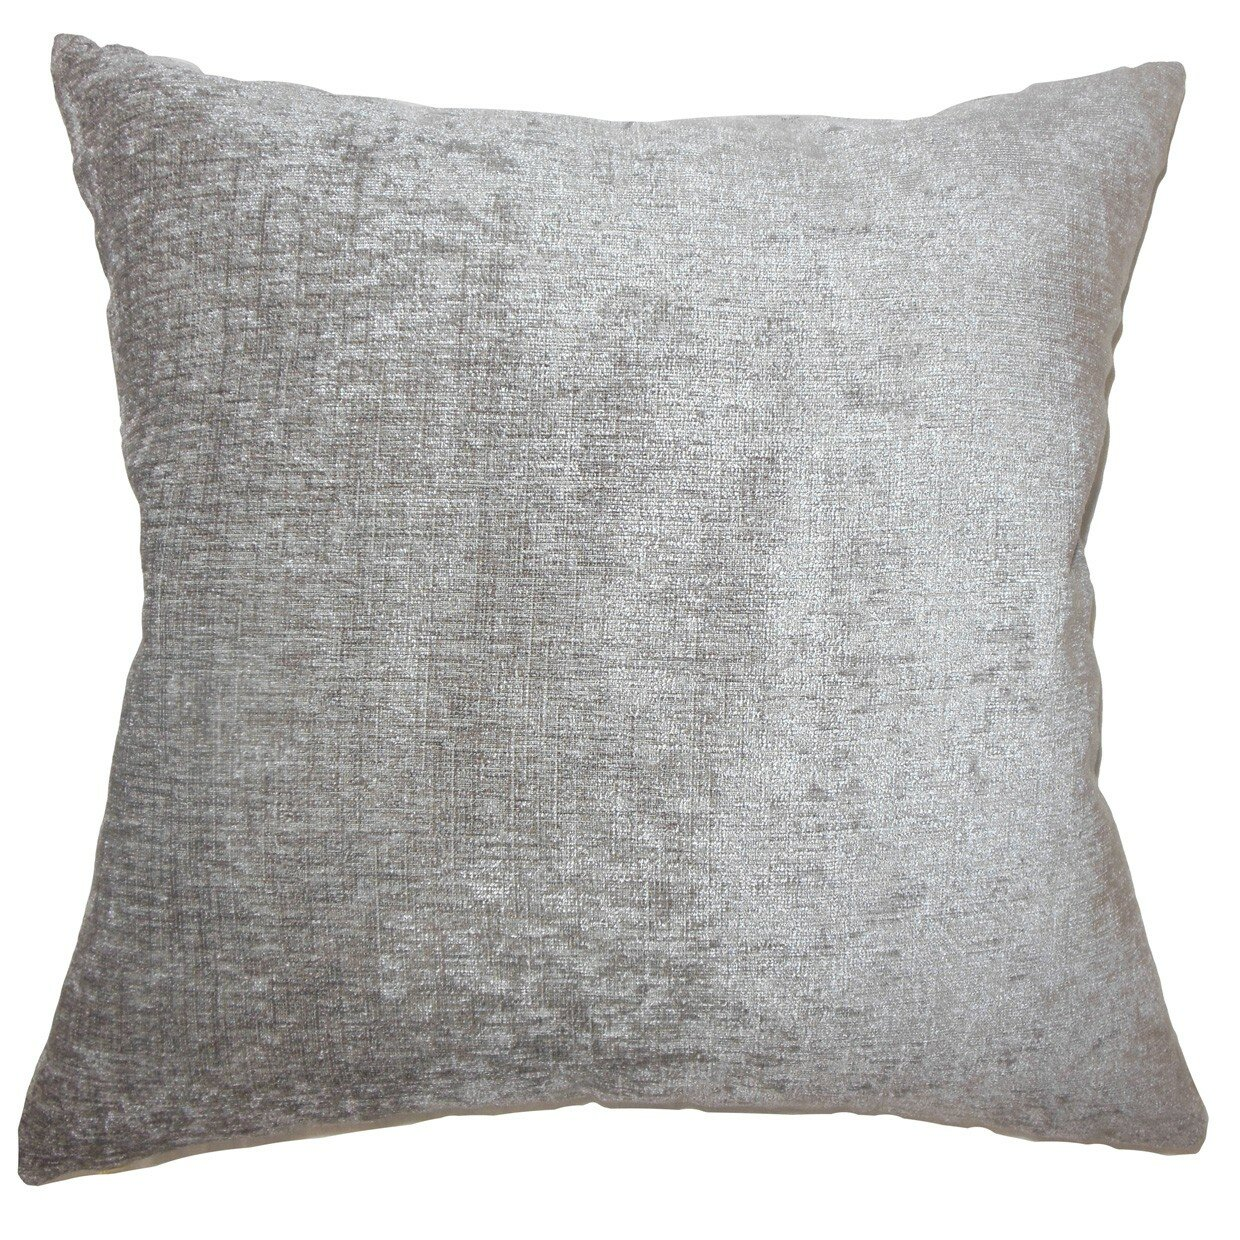 The Pillow Collection Gefion Solid Outdoor Throw Pillow Cover Wayfair